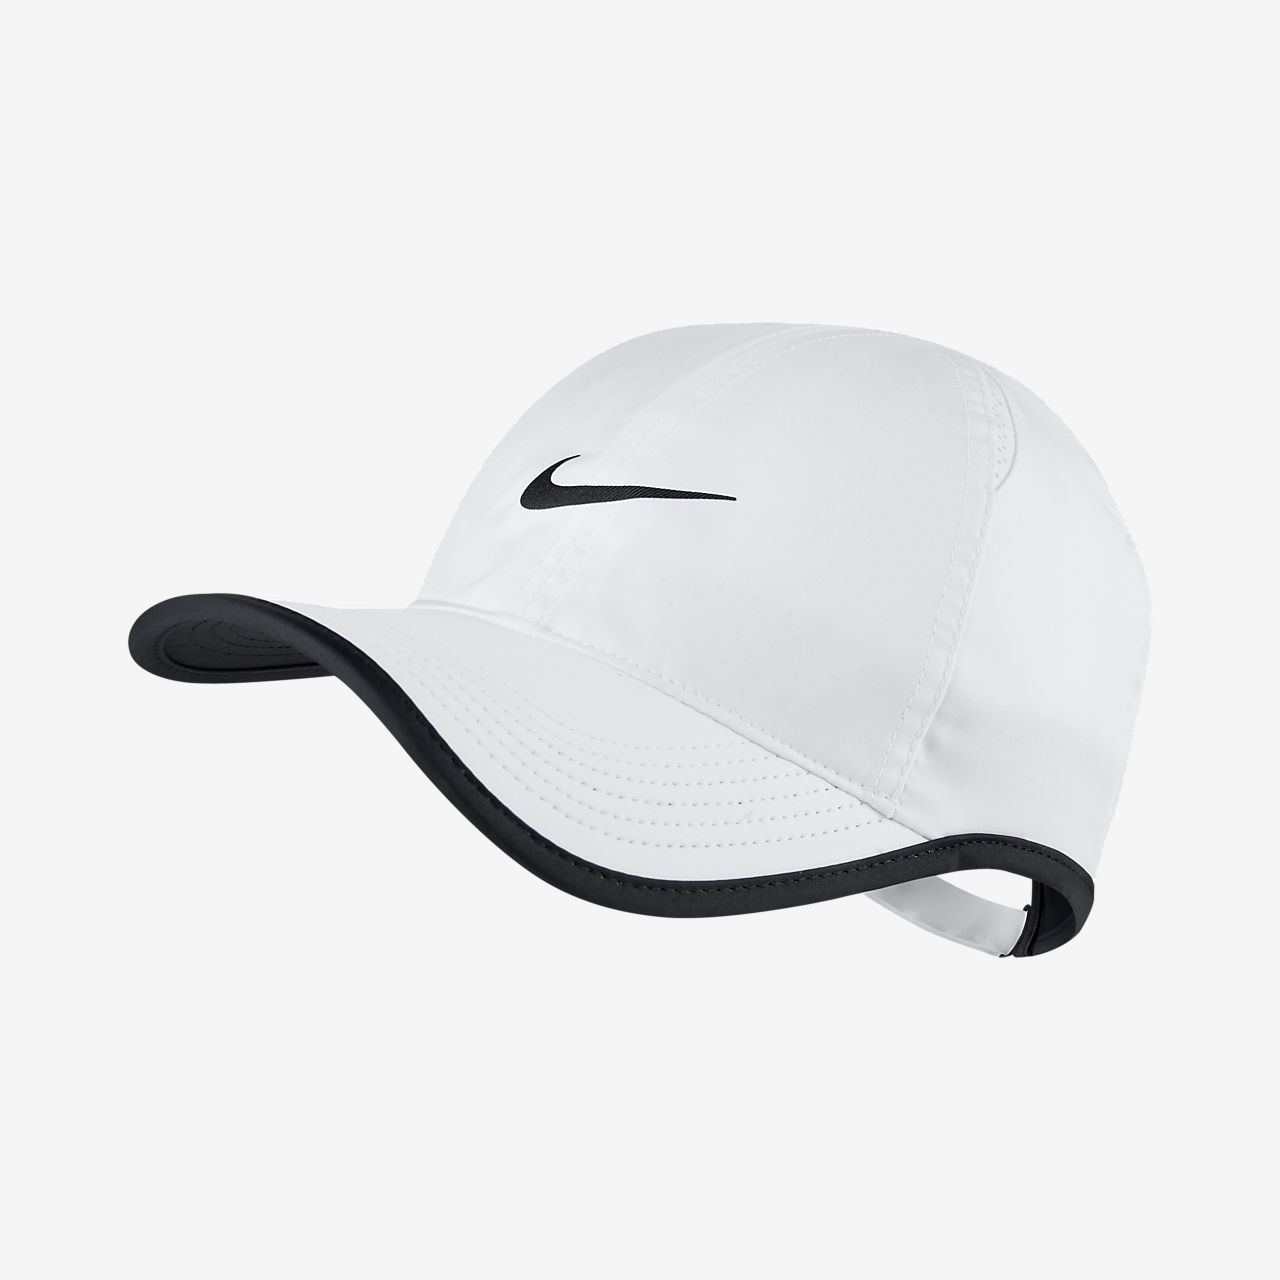 2791499d NikeCourt AeroBill Featherlight Tennis Cap. Nike.com